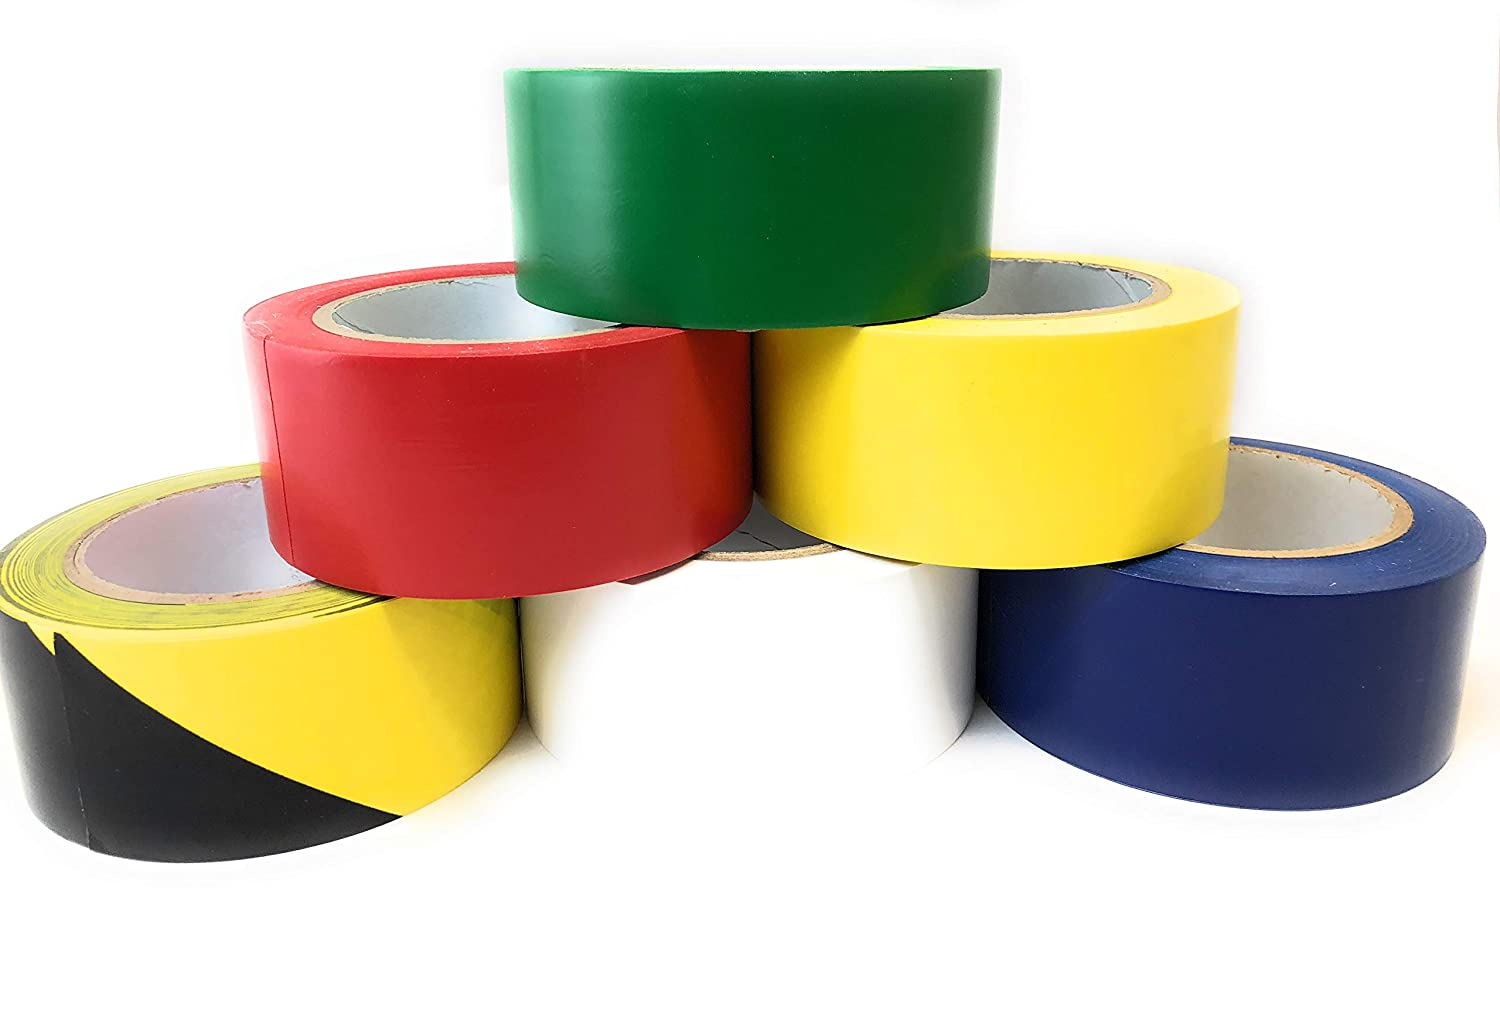 2 Blue Single Roll and 5 Rolls Bundle PVC Marking Tape 2 Width X 36 Yds Length 6 mil Thick, Premium Vinyl Safety Marking and Dance Floor Splicing Tape Multiple Color APT,